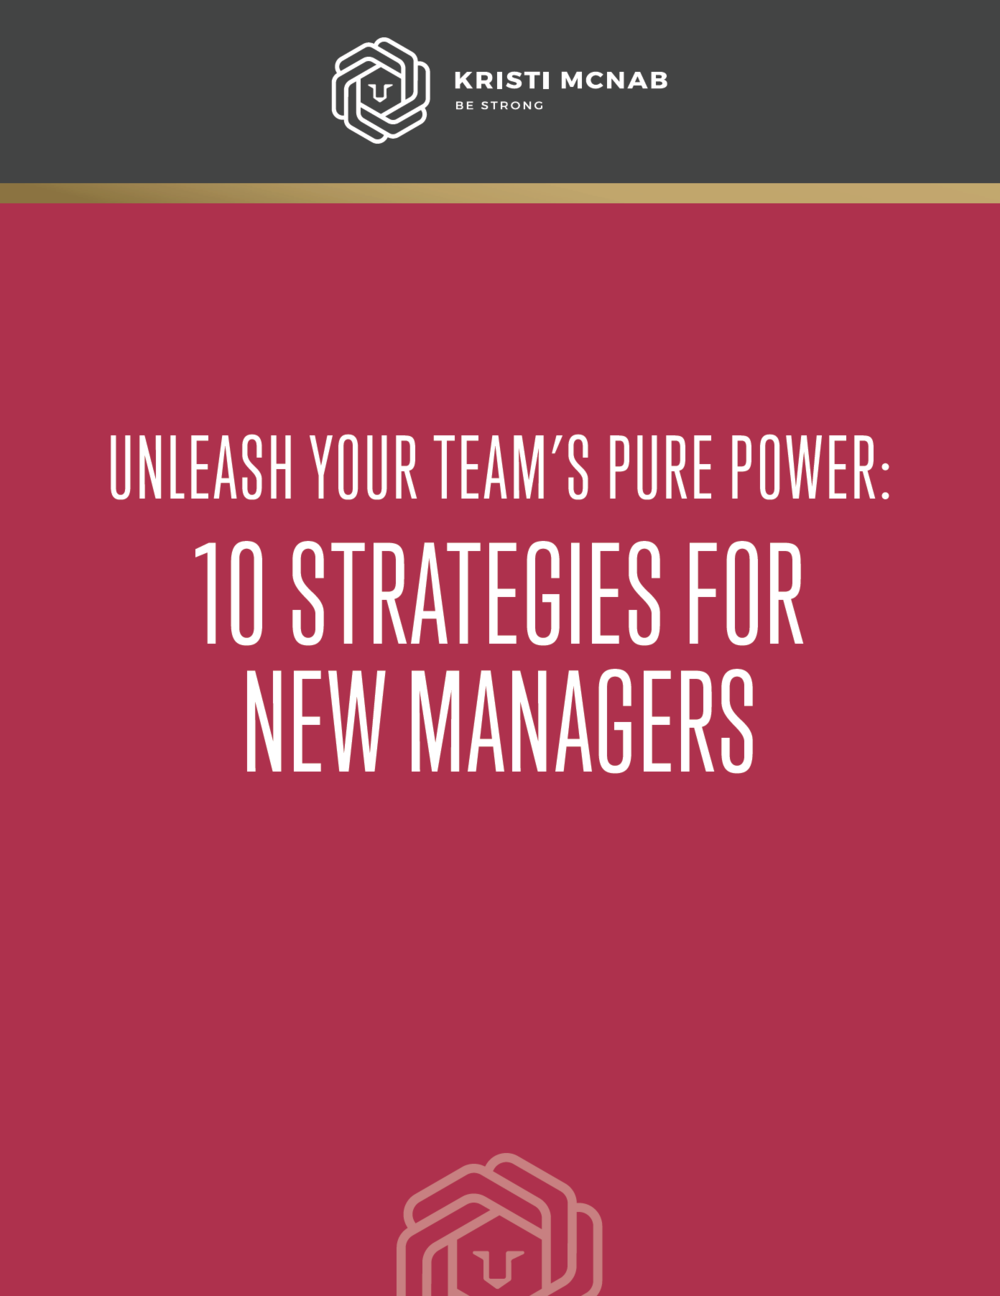 Free Download - Here's your free download: 10 Strategies for New Managers. Recently hired to a new position or chosen to lead a team? Explore these 10 ideas to start off powerfully and effectively.